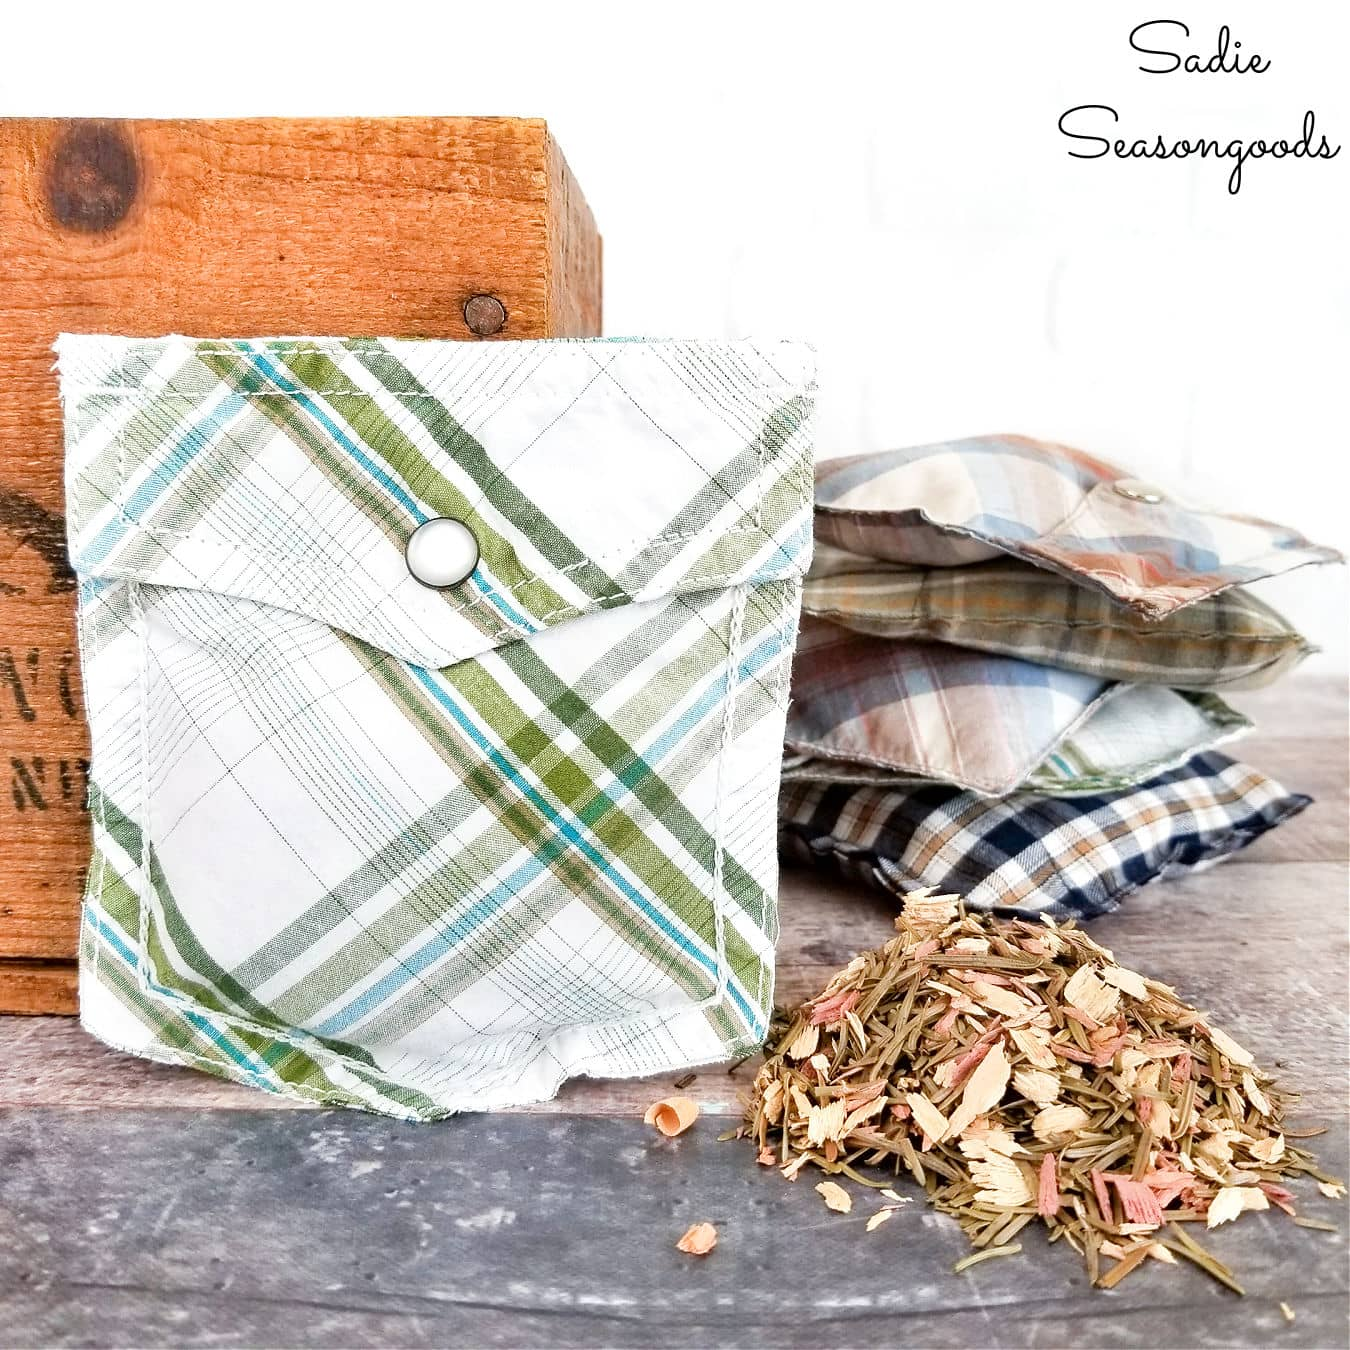 Drawer Sachets from Shirt Pockets